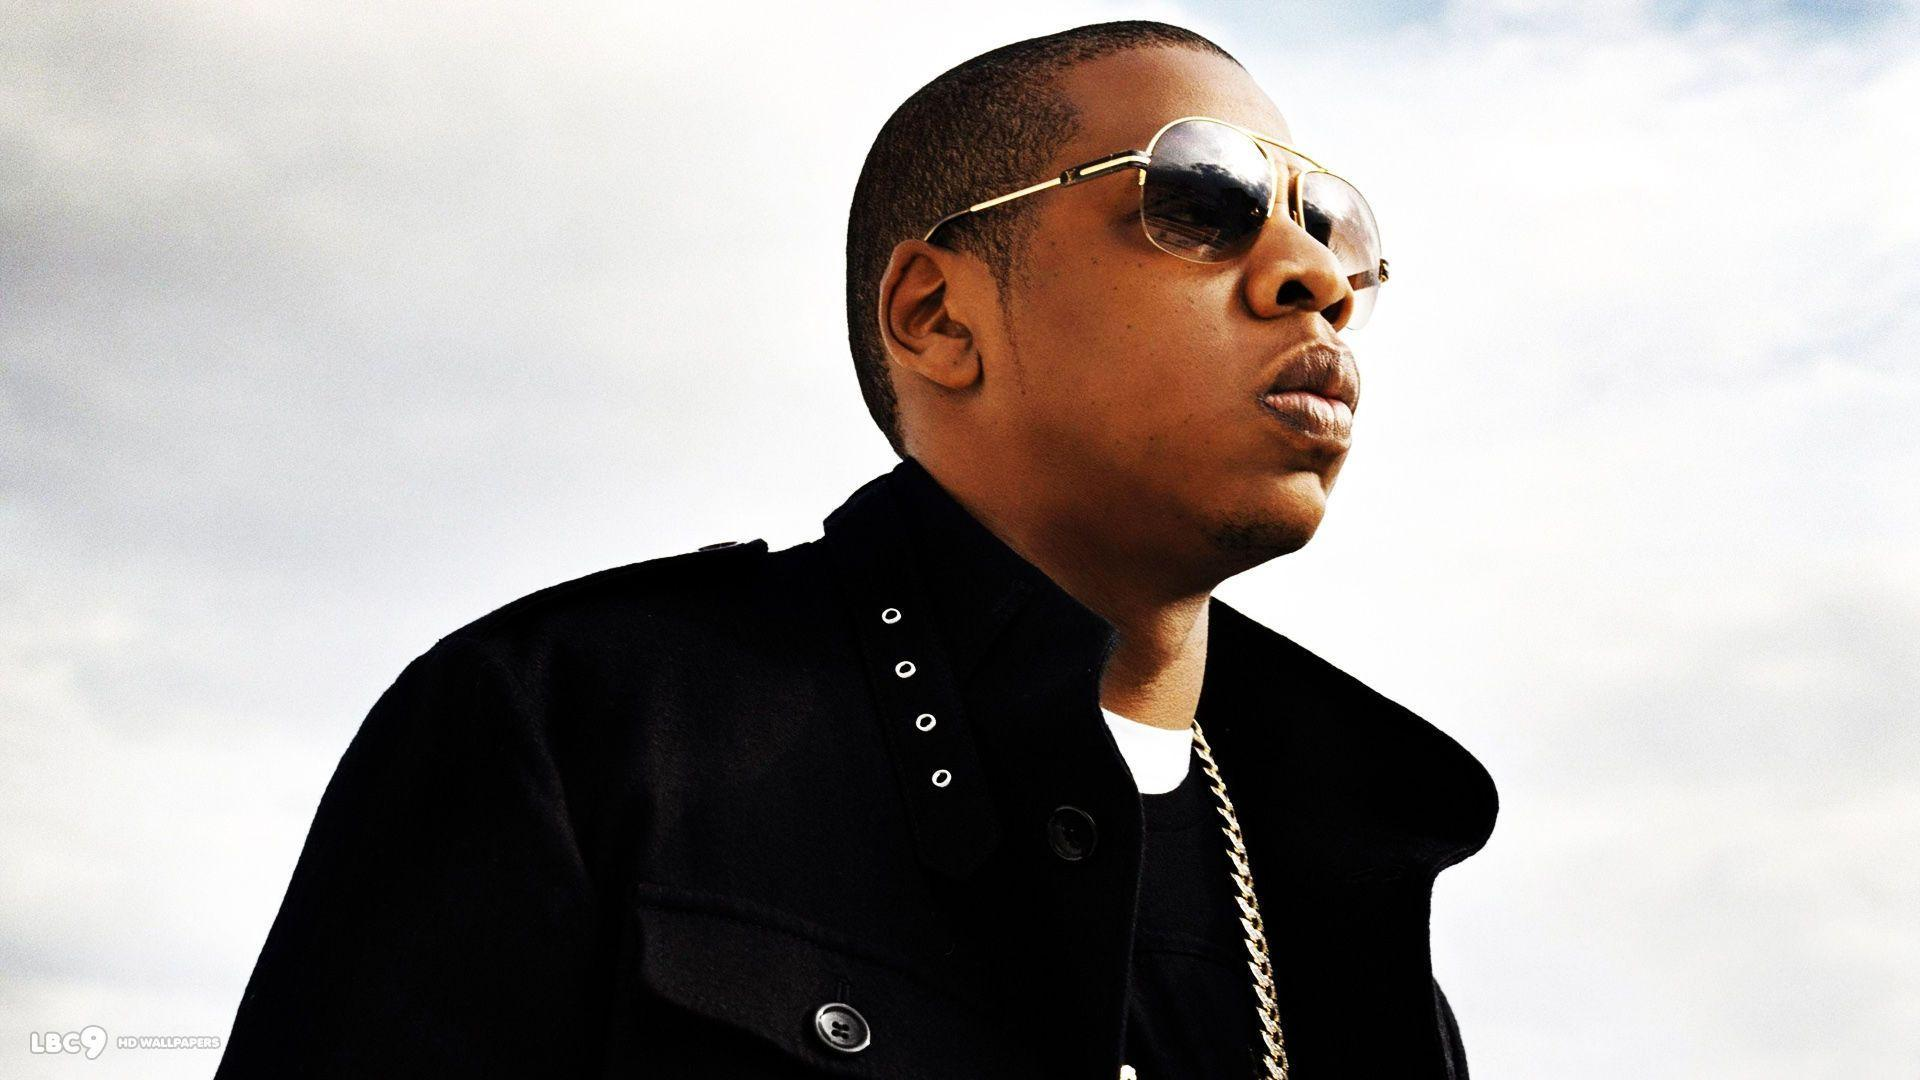 jay z wallpaper 1/1 | hip hop and rap hd backgrounds